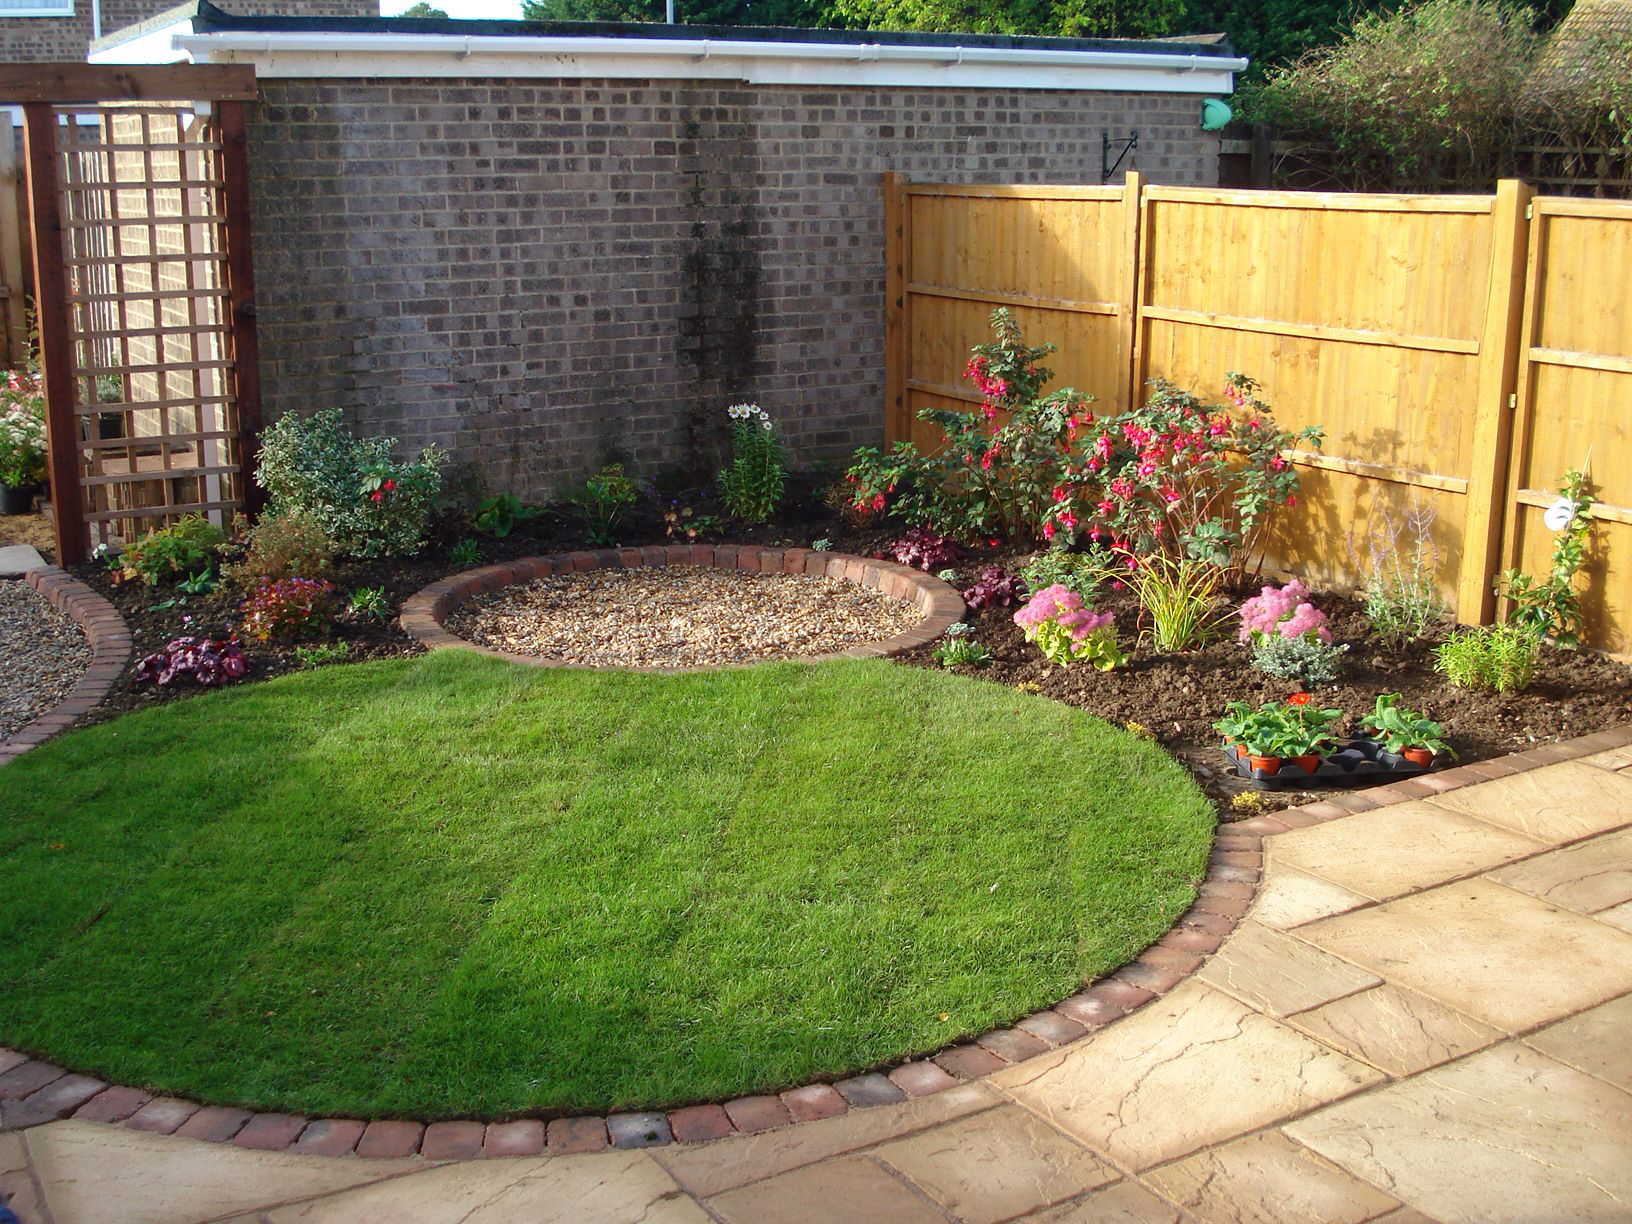 Small Circular Lawn With Tiny Round Patio Beyond For A Coherent Effect In An Urban Garden Smallgarde Circular Garden Design Urban Garden Design Circular Lawn